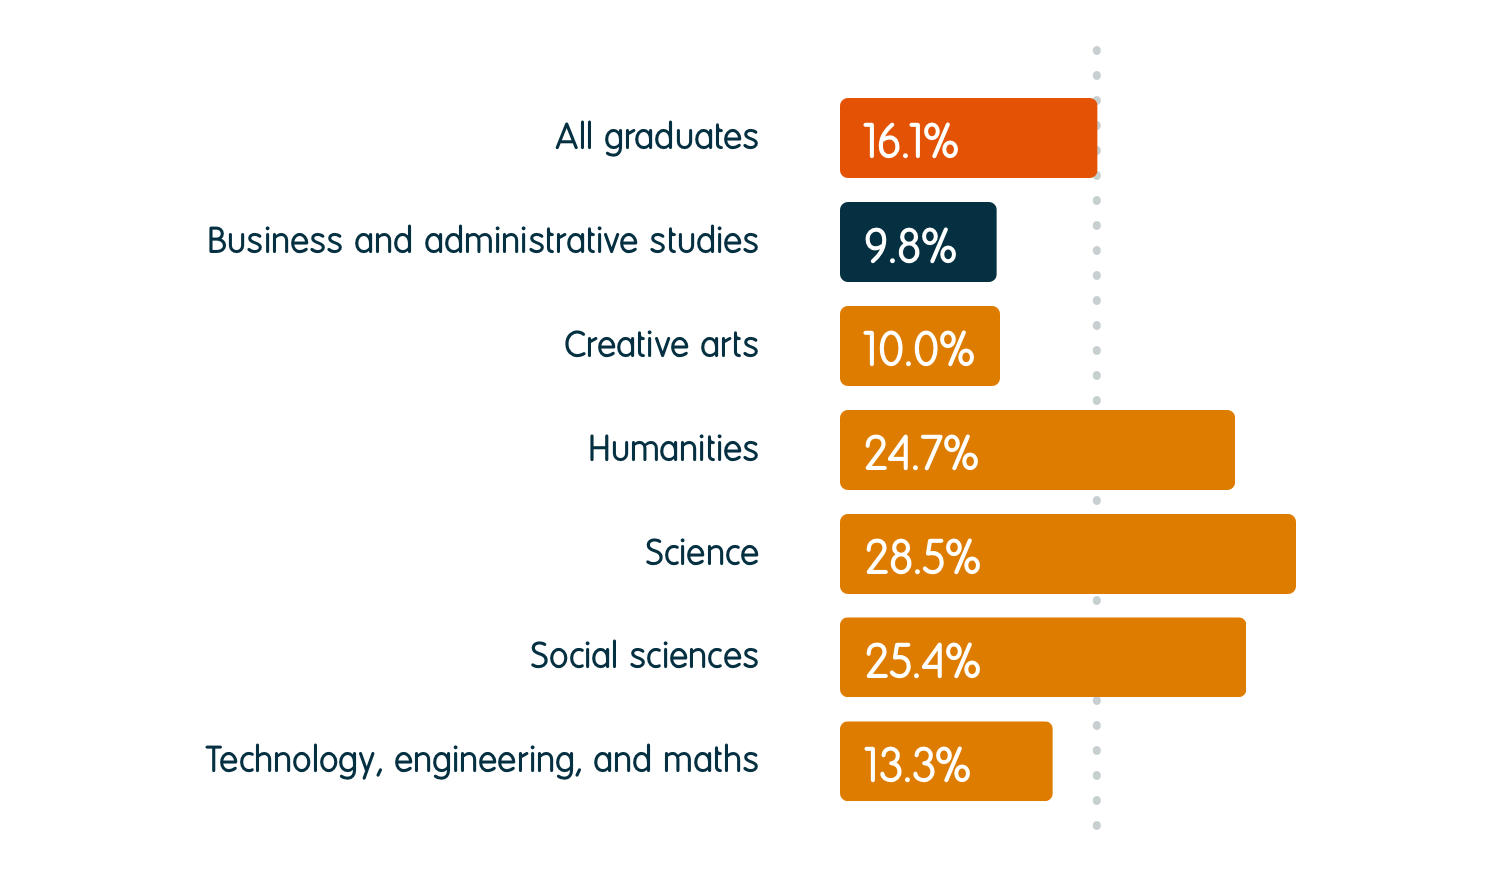 9.8% of business and administrative studies graduates were in further study six months after graduation, compared to an average of 16.1% for all graduates. For other subject groups, the percentage going into further study was 10.0% for creative arts, 24.7% for humanities, 28.5% for science, 25.4% for social sciences, and 13.3% for technology, engineering, and maths.